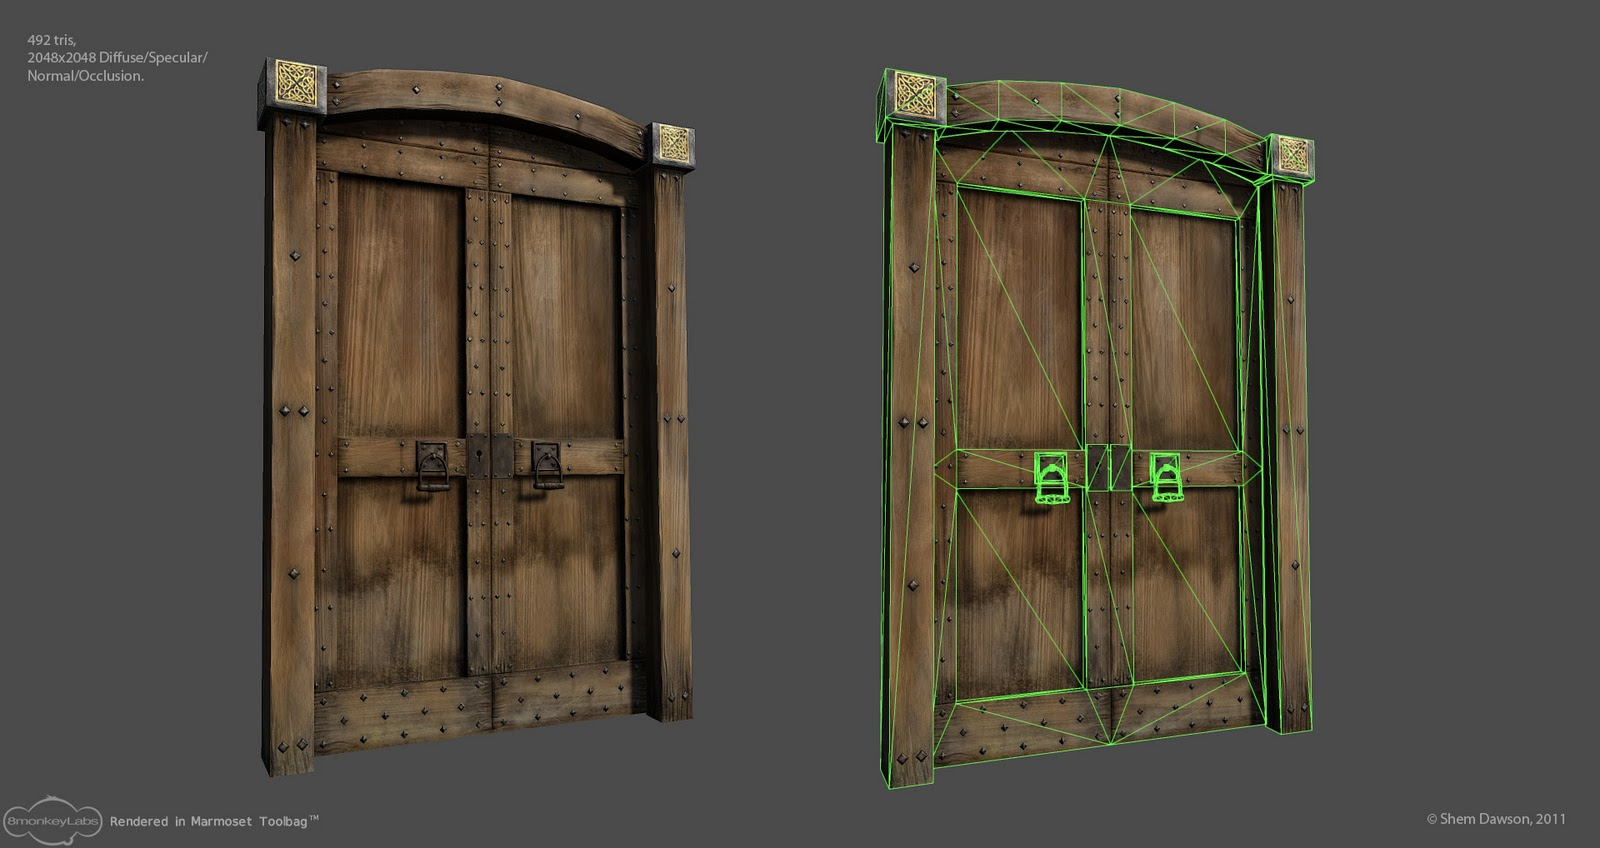 Medieval/Fantasy Door - Game ready asset. & The Art of Shem Dawson: Medieval/Fantasy Door - Game ready asset.